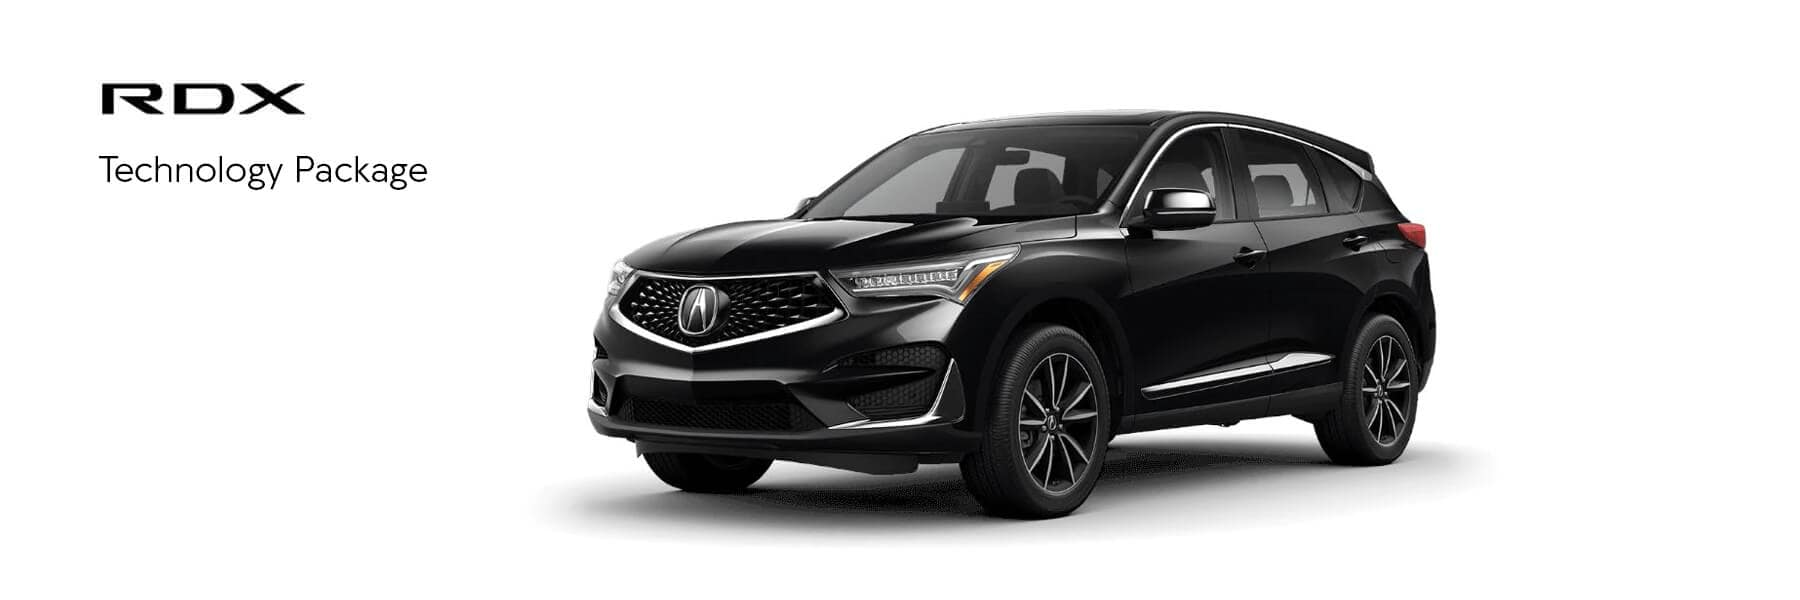 Acura RDX Technology Package Slider